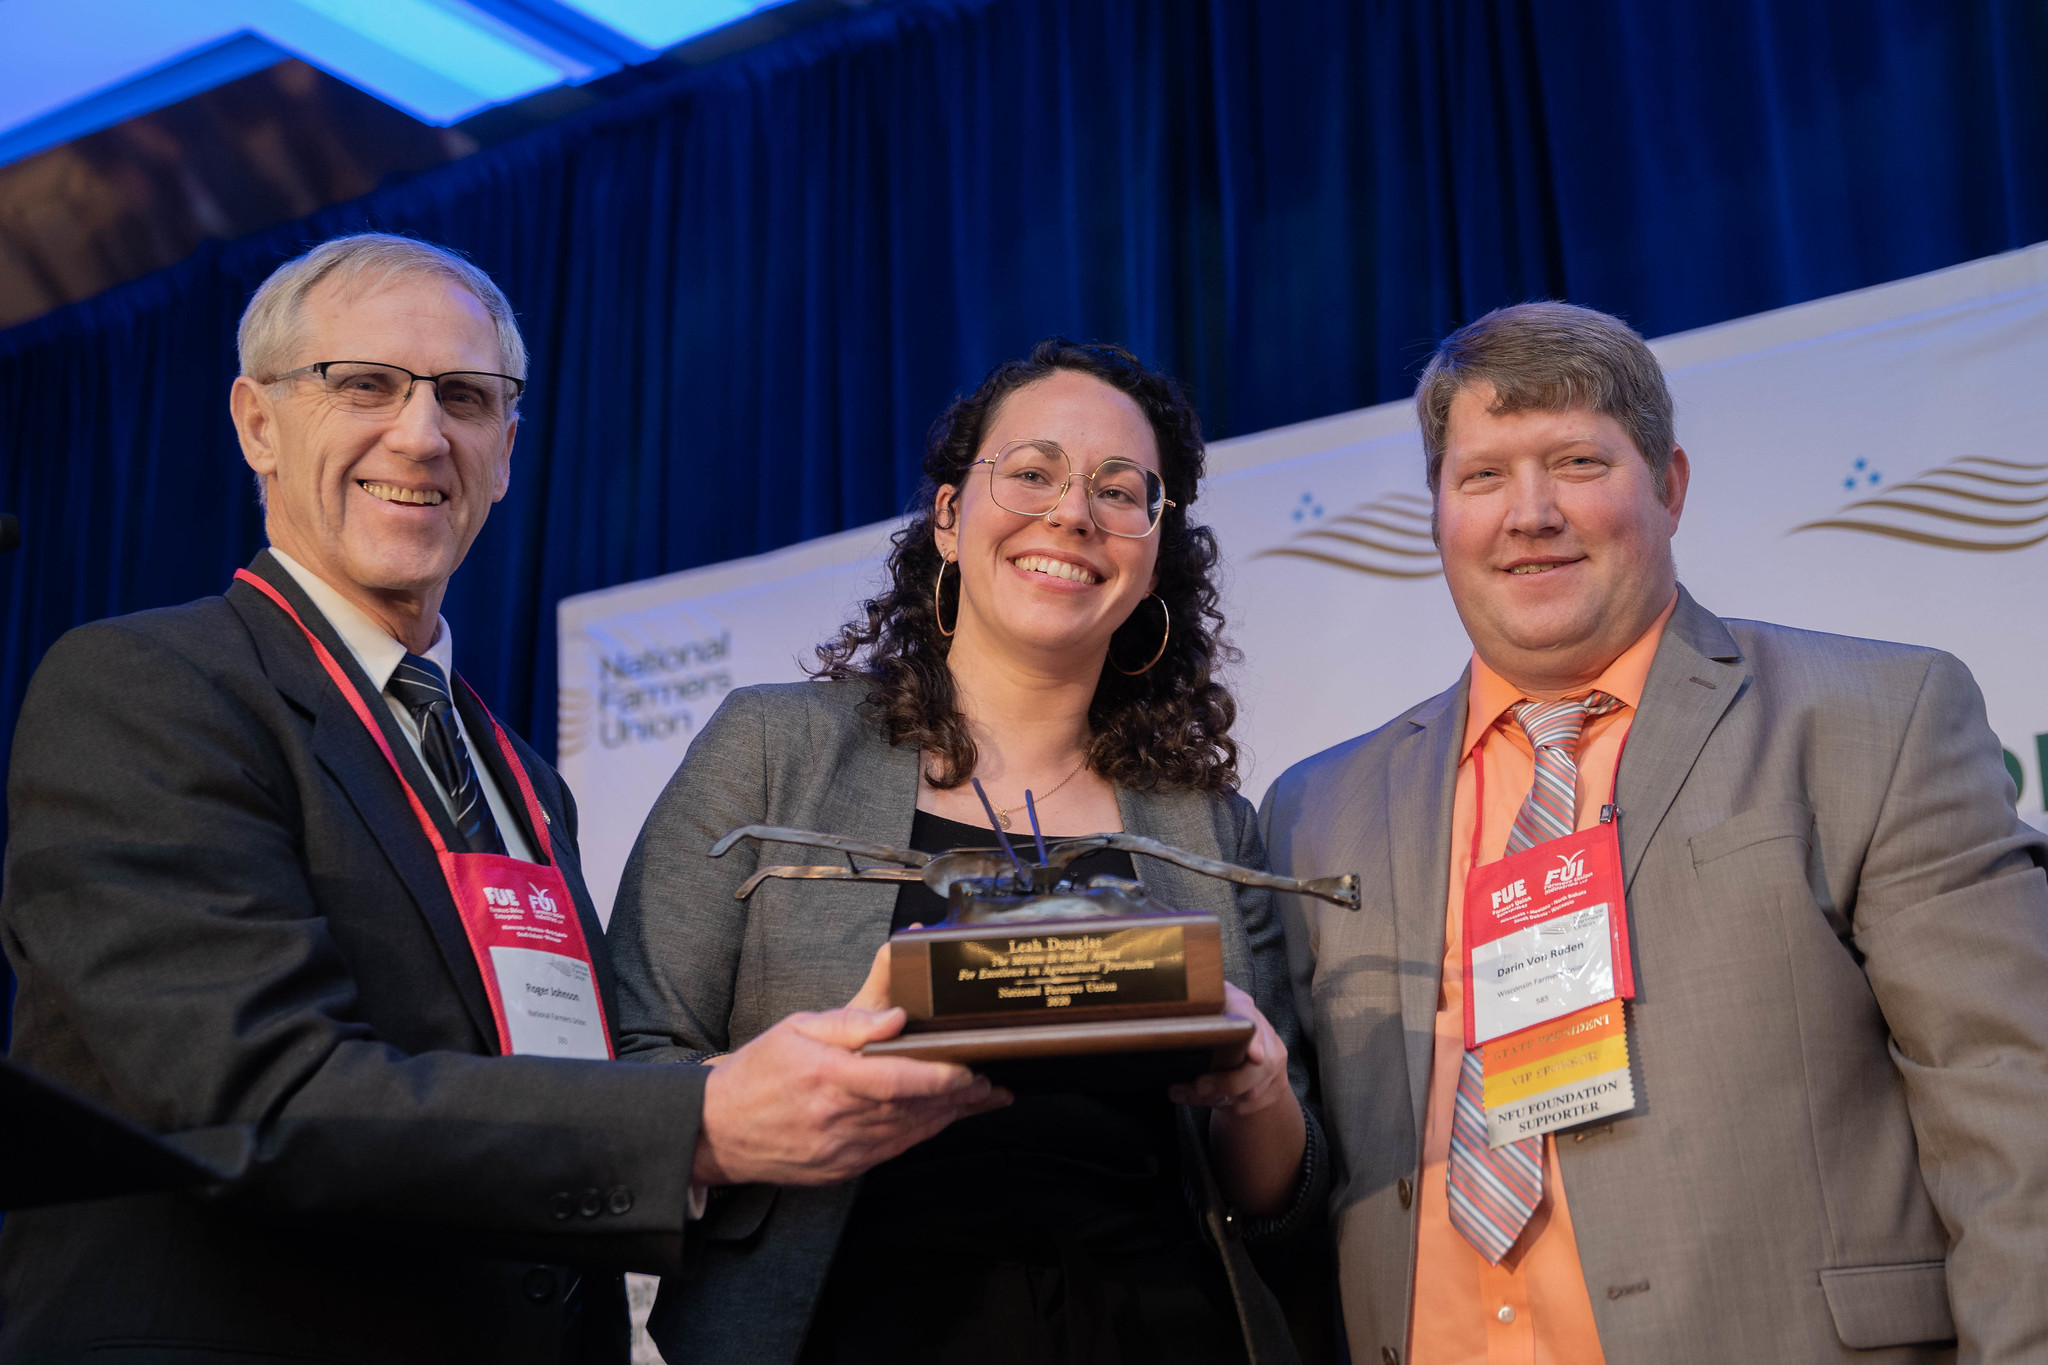 Farmers Union Honors Leah Douglas for Excellence in Agriculture Communications